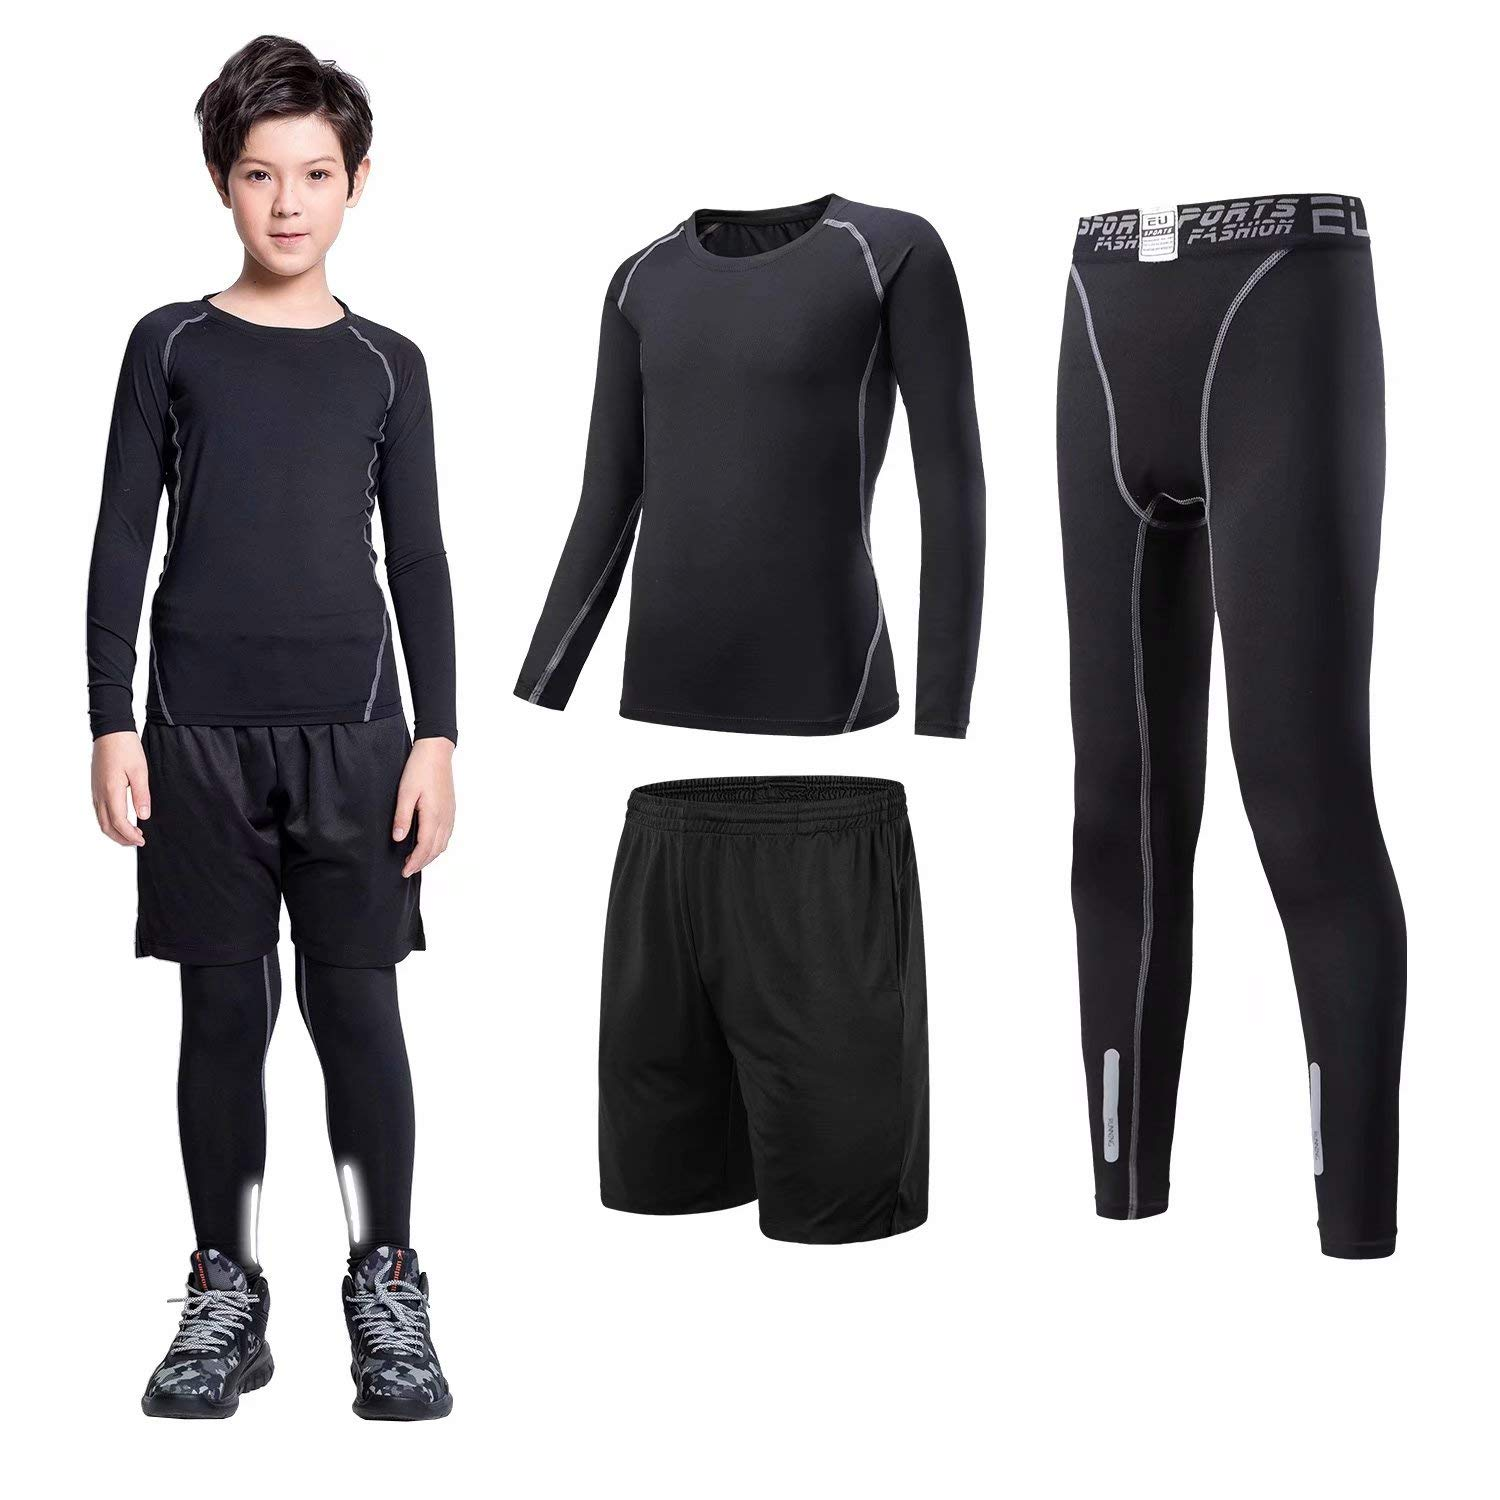 Sillictor Sports Long Johns for Boys Thermal Base Layer Kids Compression Pants and Shirts Set Unisex Warm Sweat-wicking Breathable